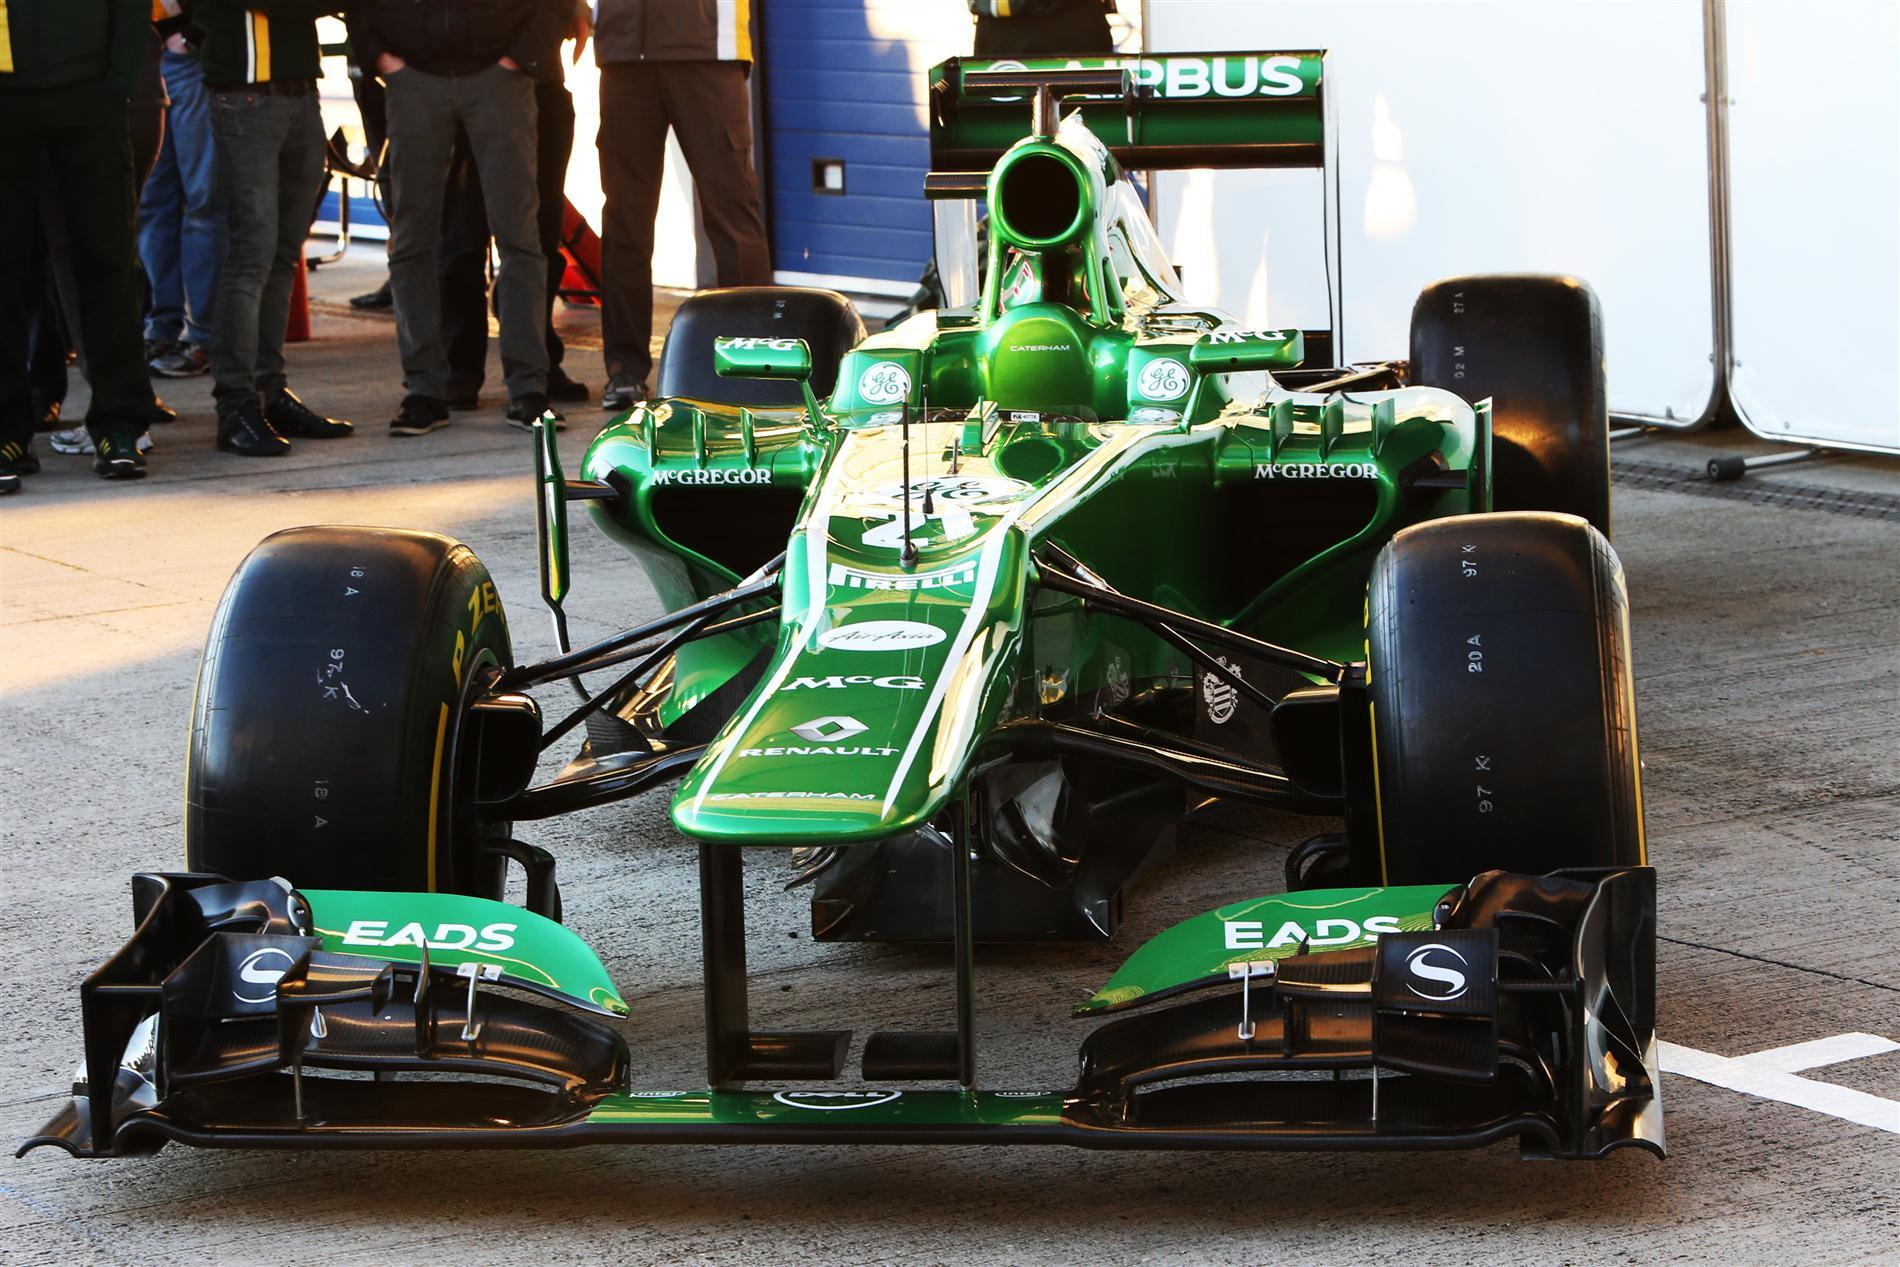 O Carro da Caterham de 2013